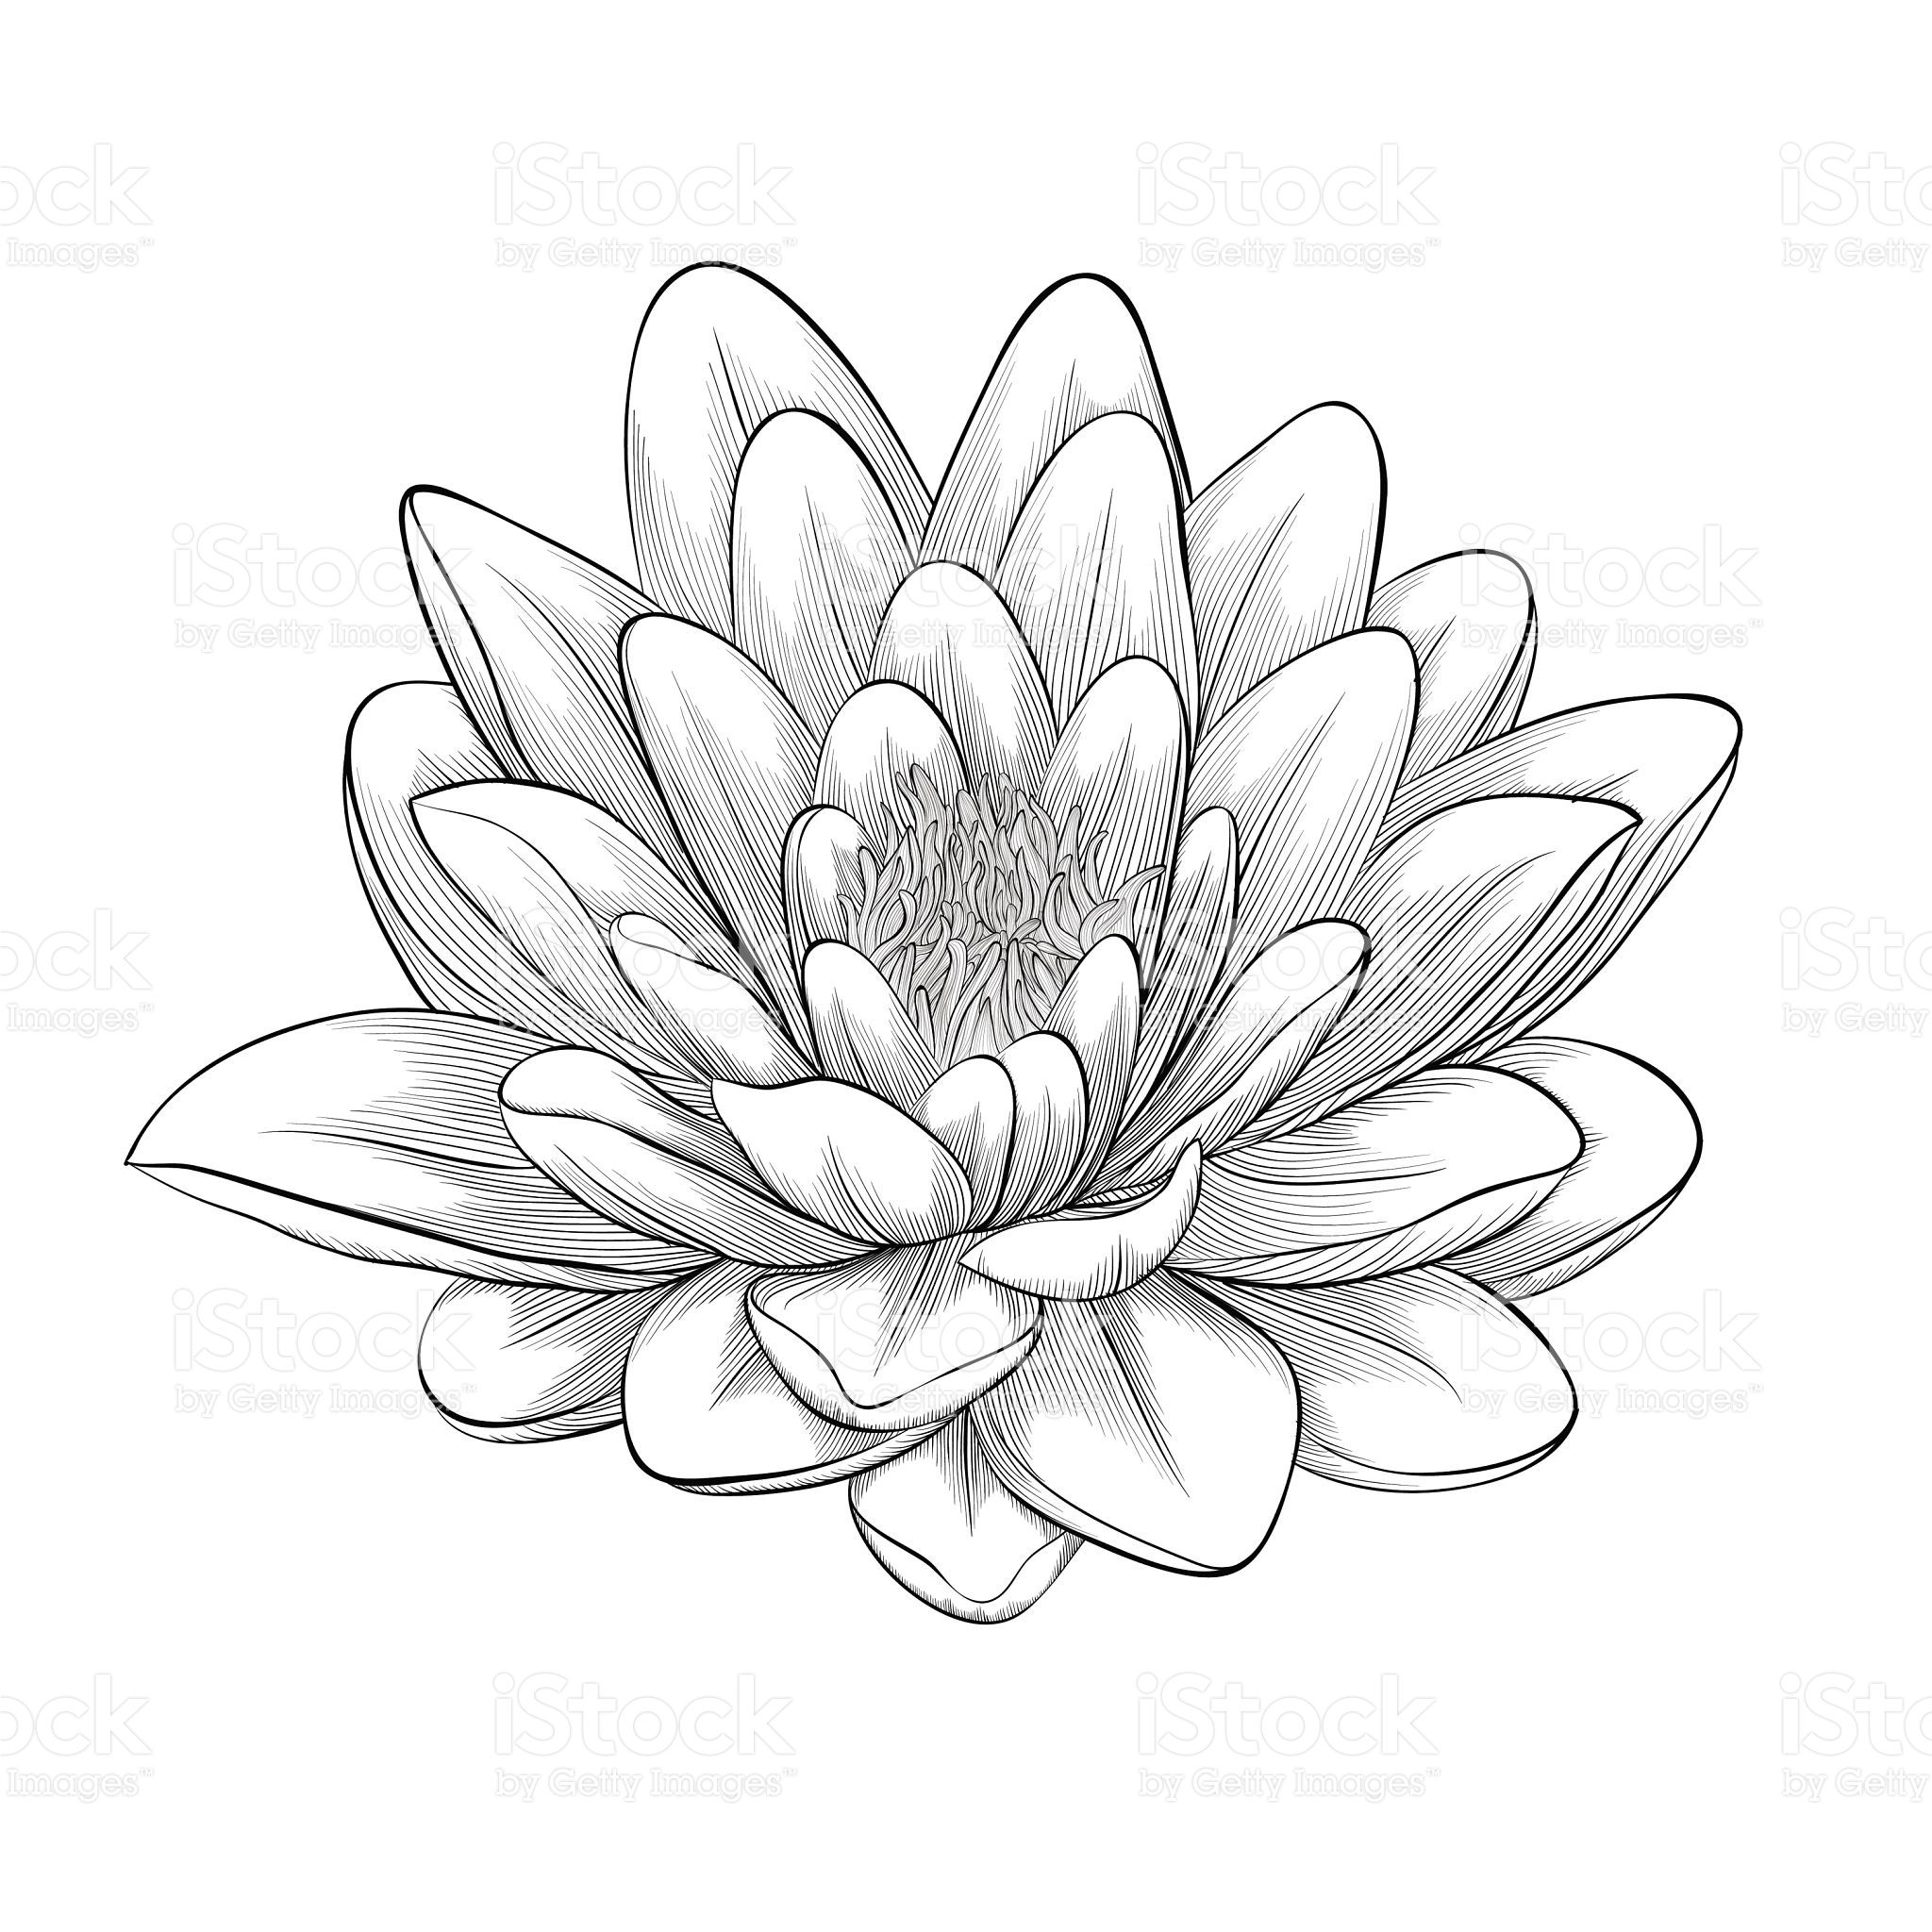 Beautiful Monochrome Black And White Lotus Flower Painted In